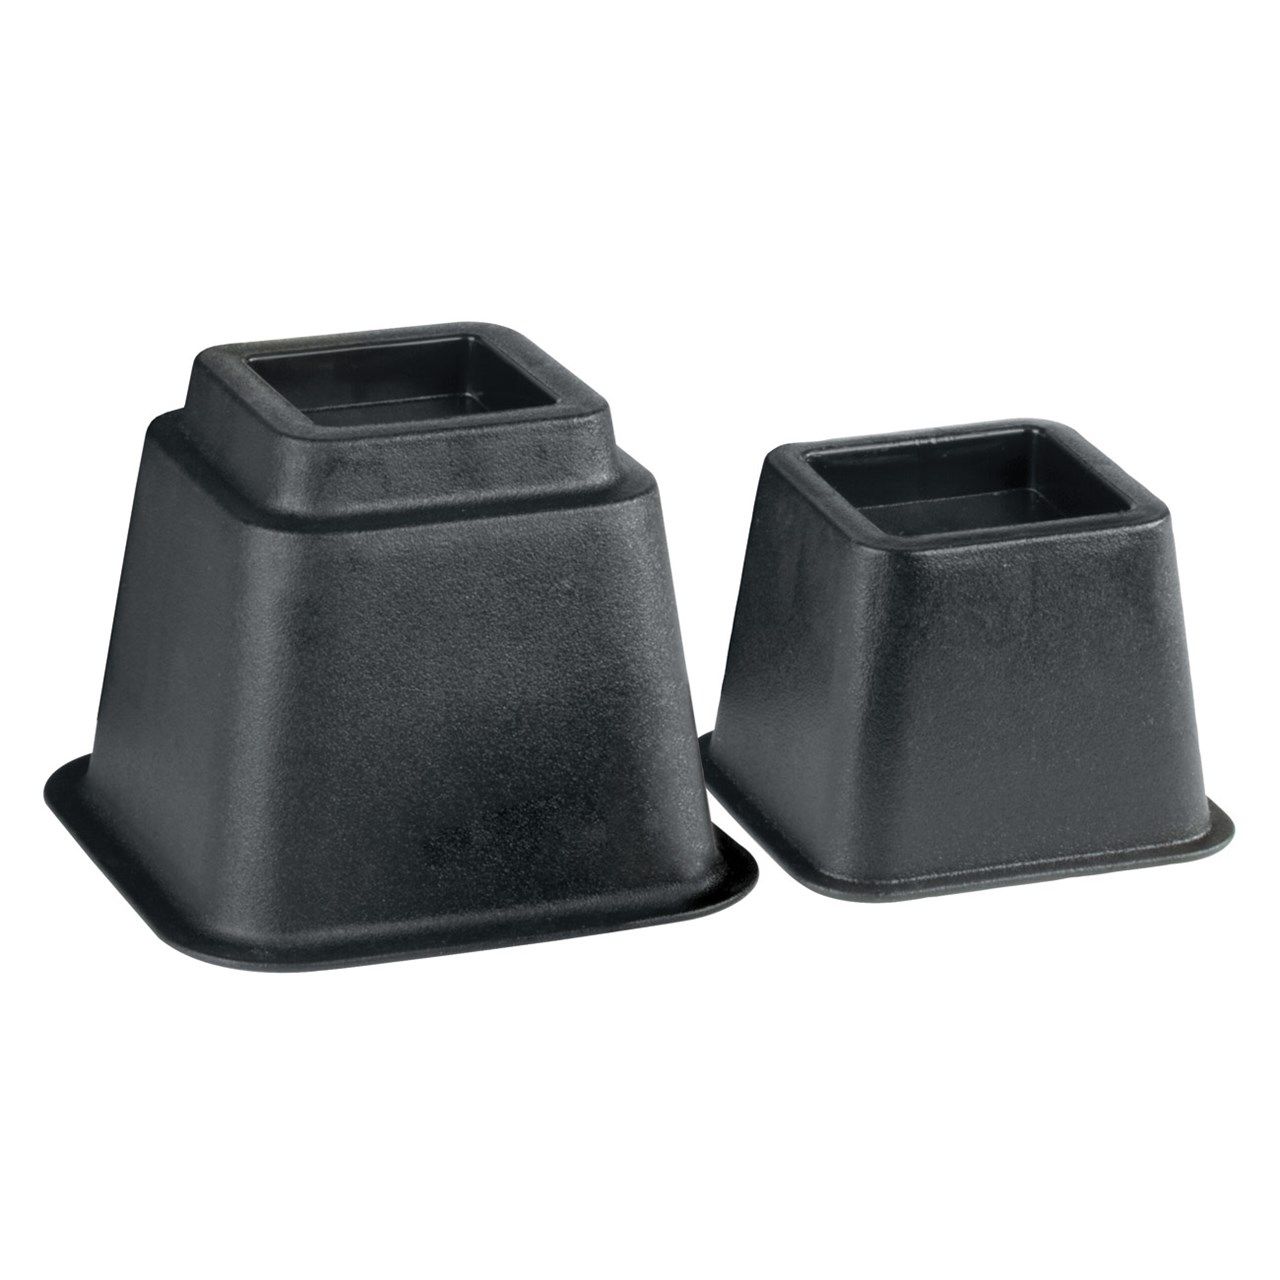 Bed and Chair Risers- One Pair- 4-inch